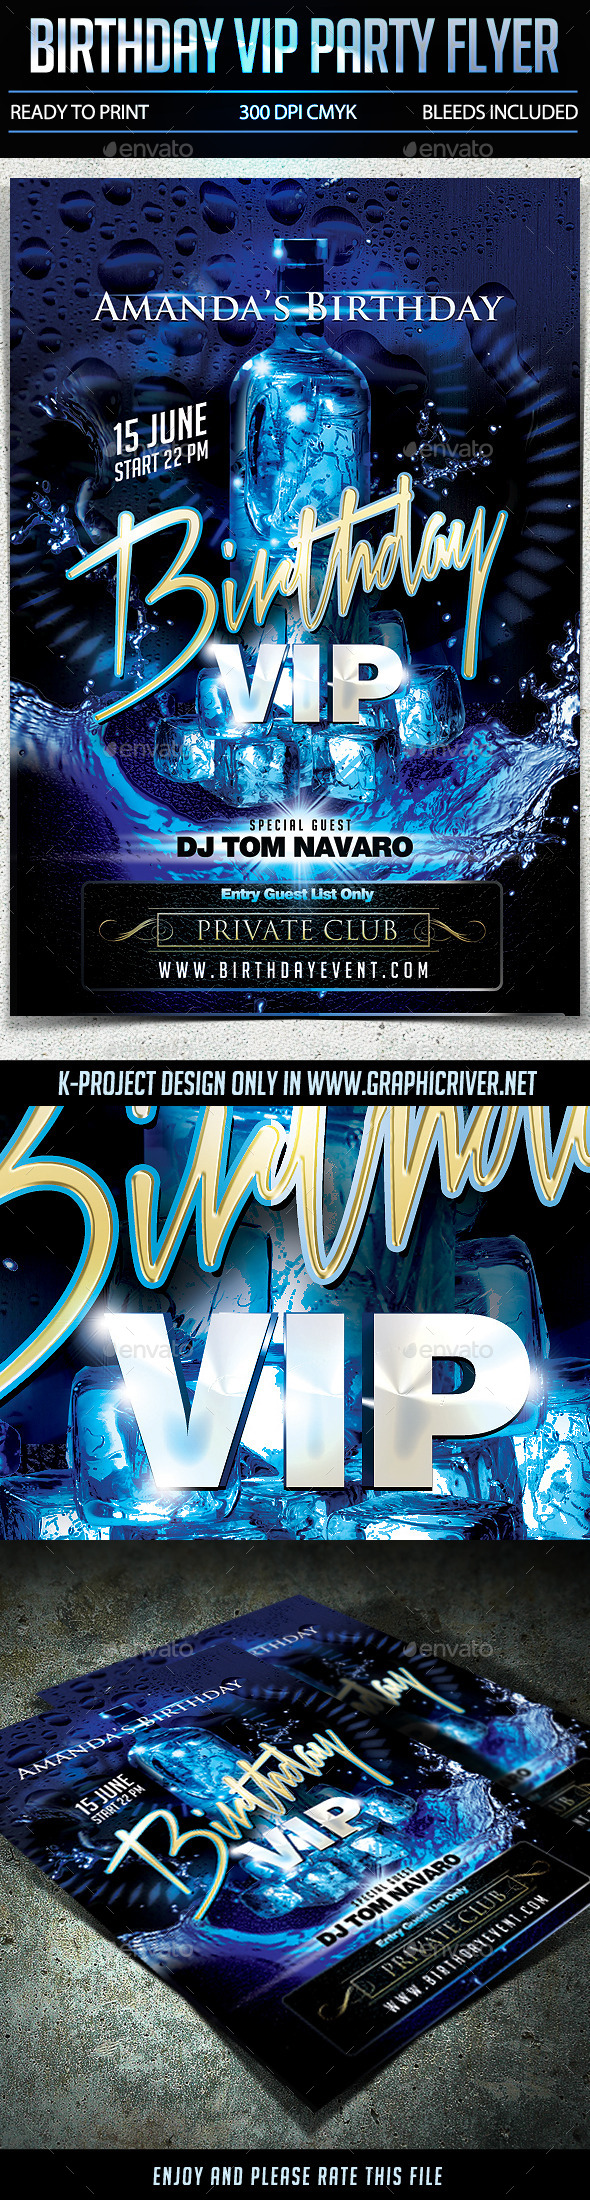 GraphicRiver Birthday VIP Party Flyer 10795637